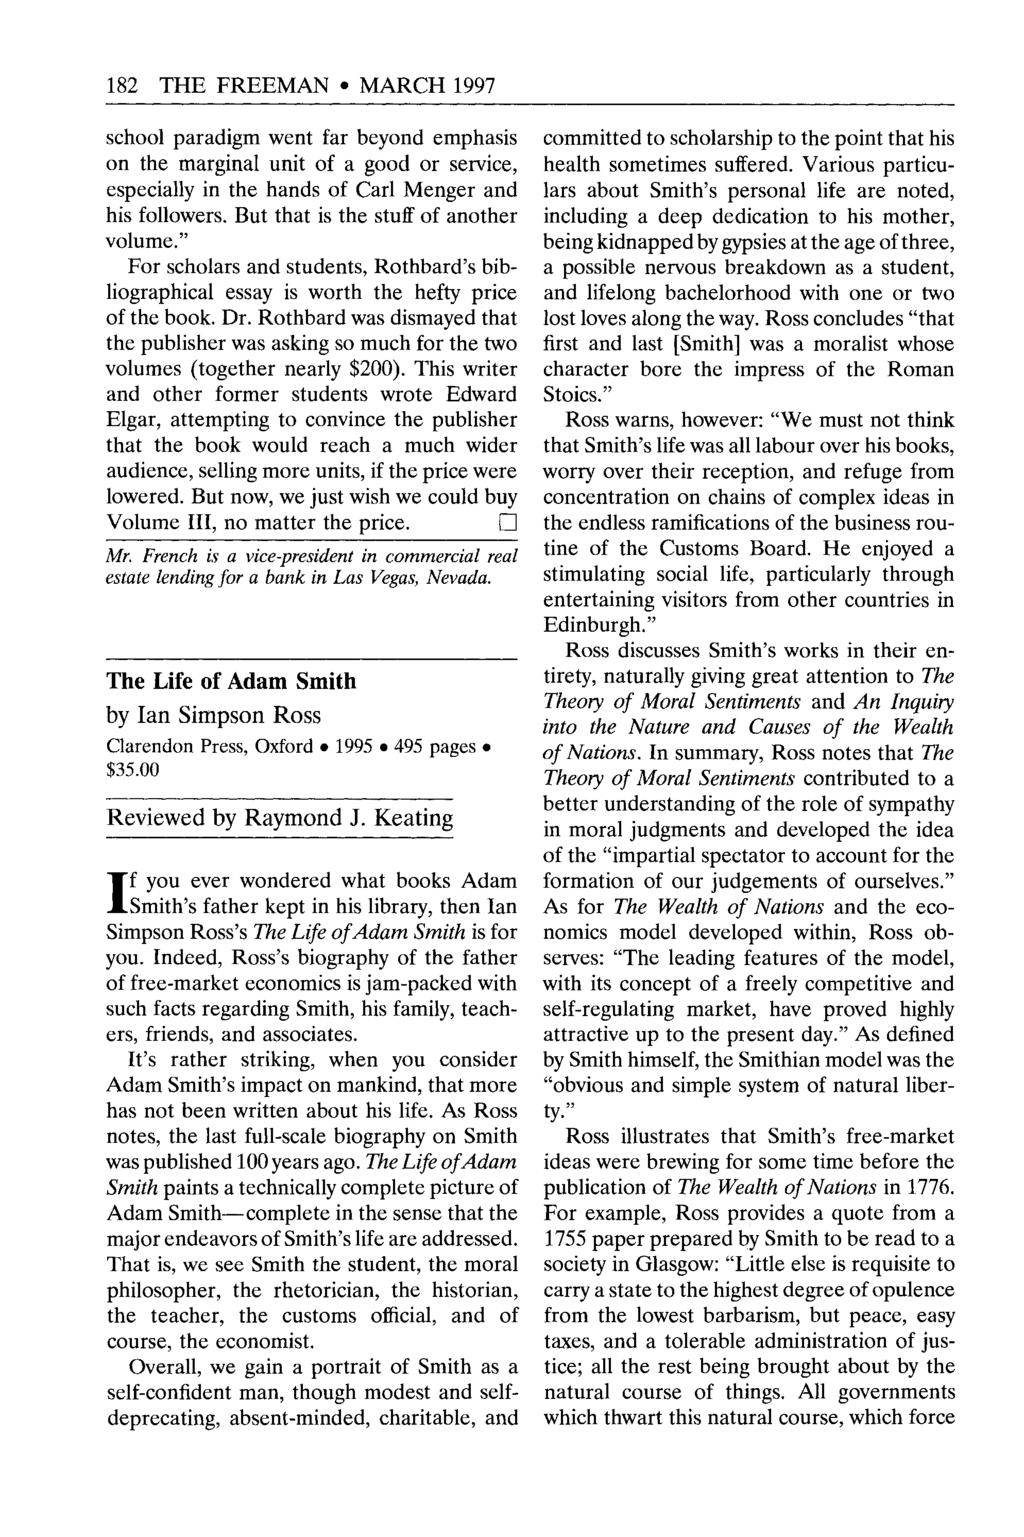 182 THE FREEMAN MARCH 1997 school paradigm went far beyond emphasis on the marginal unit of a good or service, especially in the hands of Carl Menger and his followers.